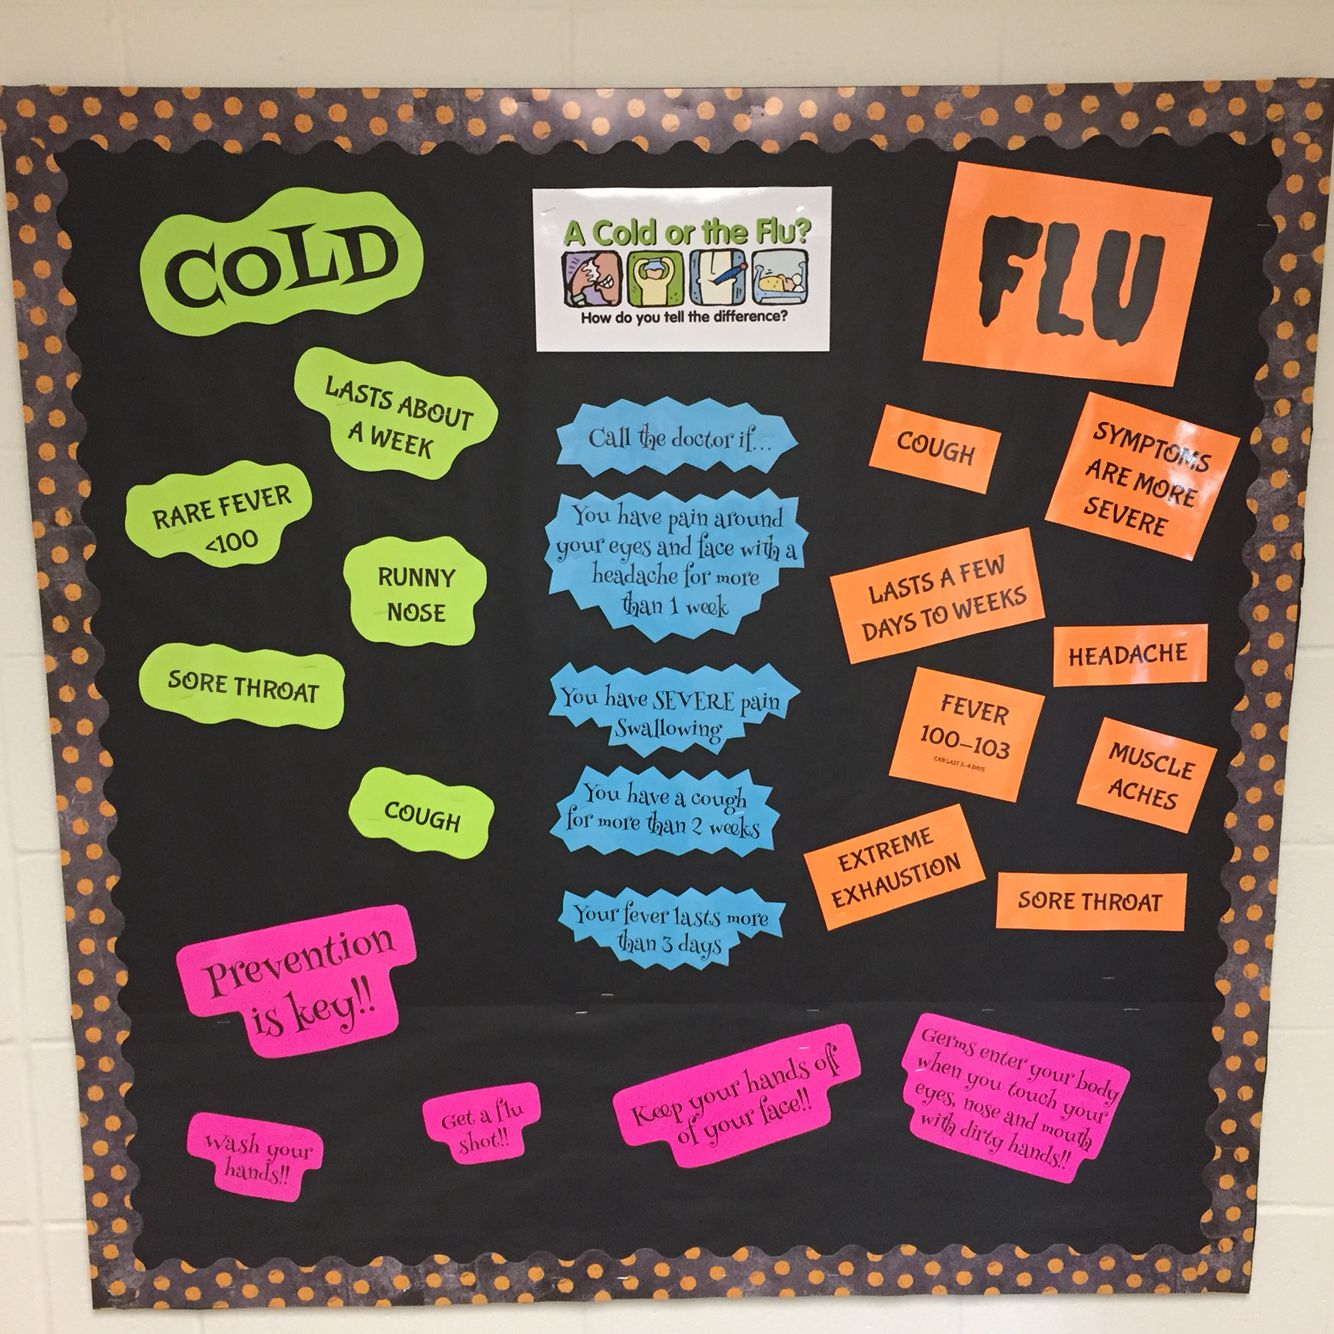 Go green vegetable bulletin board idea myclassroomideas com - I Made This For My Health Room Bulletin Board Cold Vs Flu